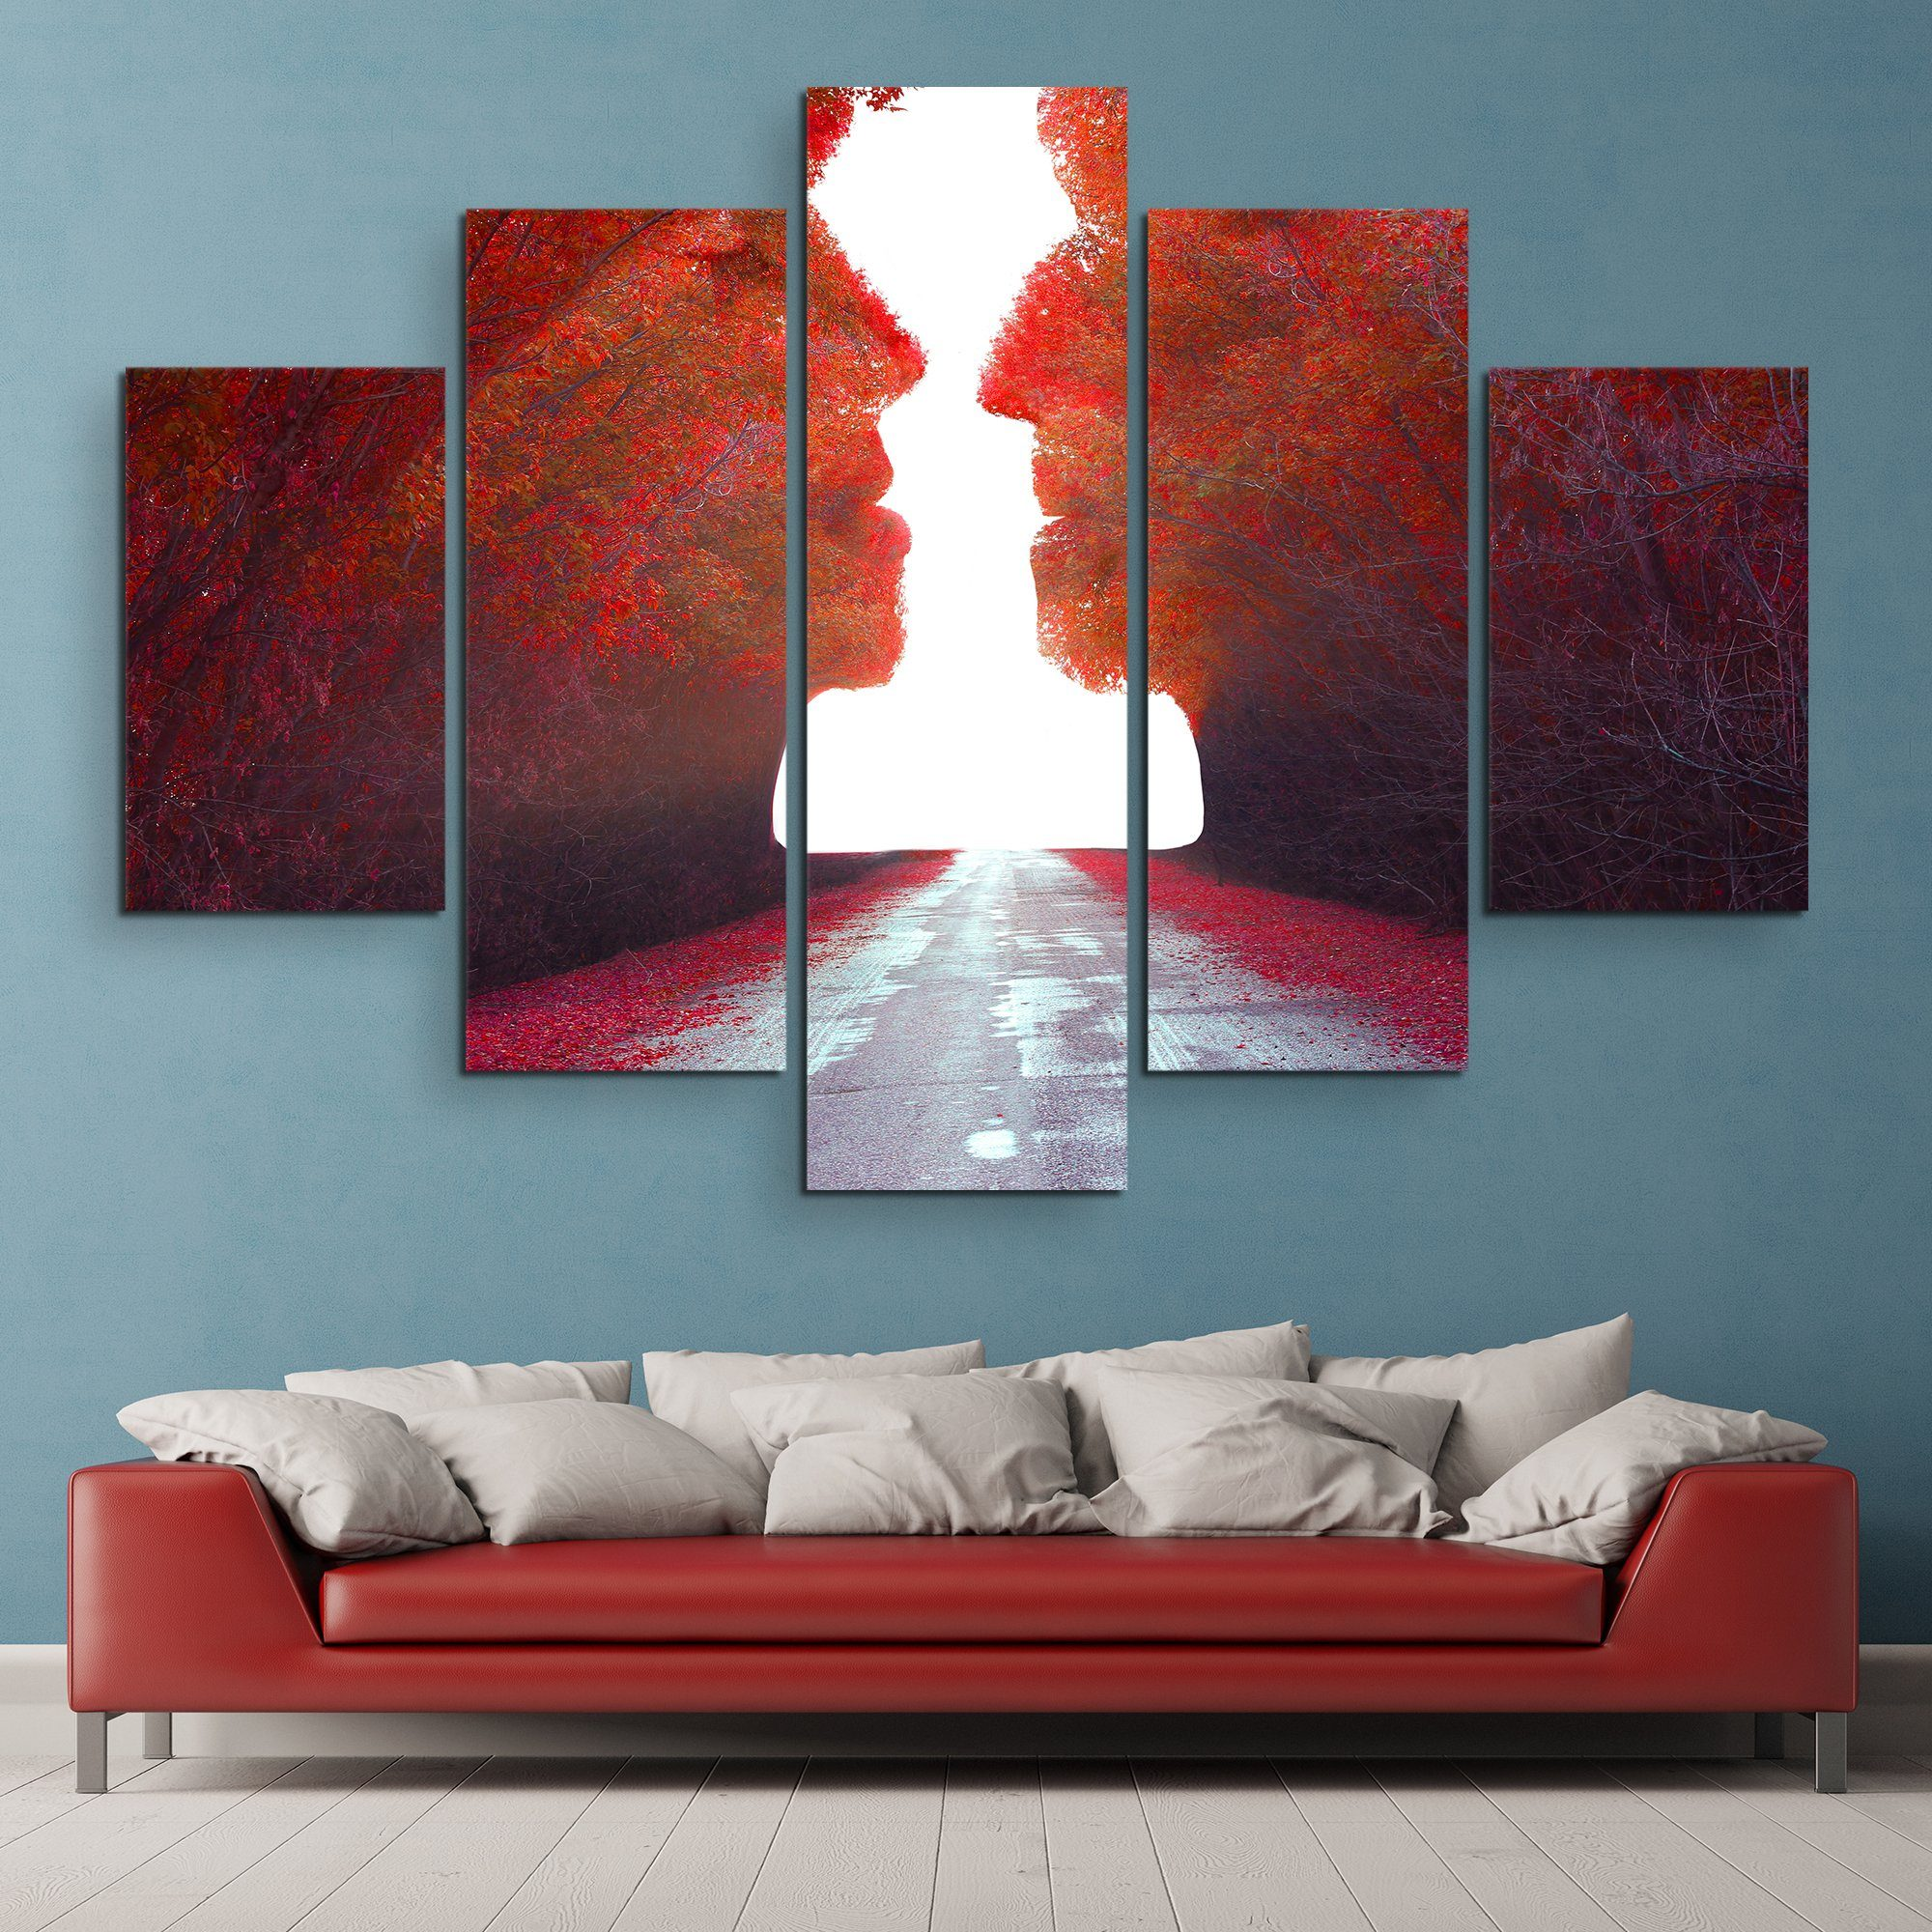 5 piece Road to Love wall art